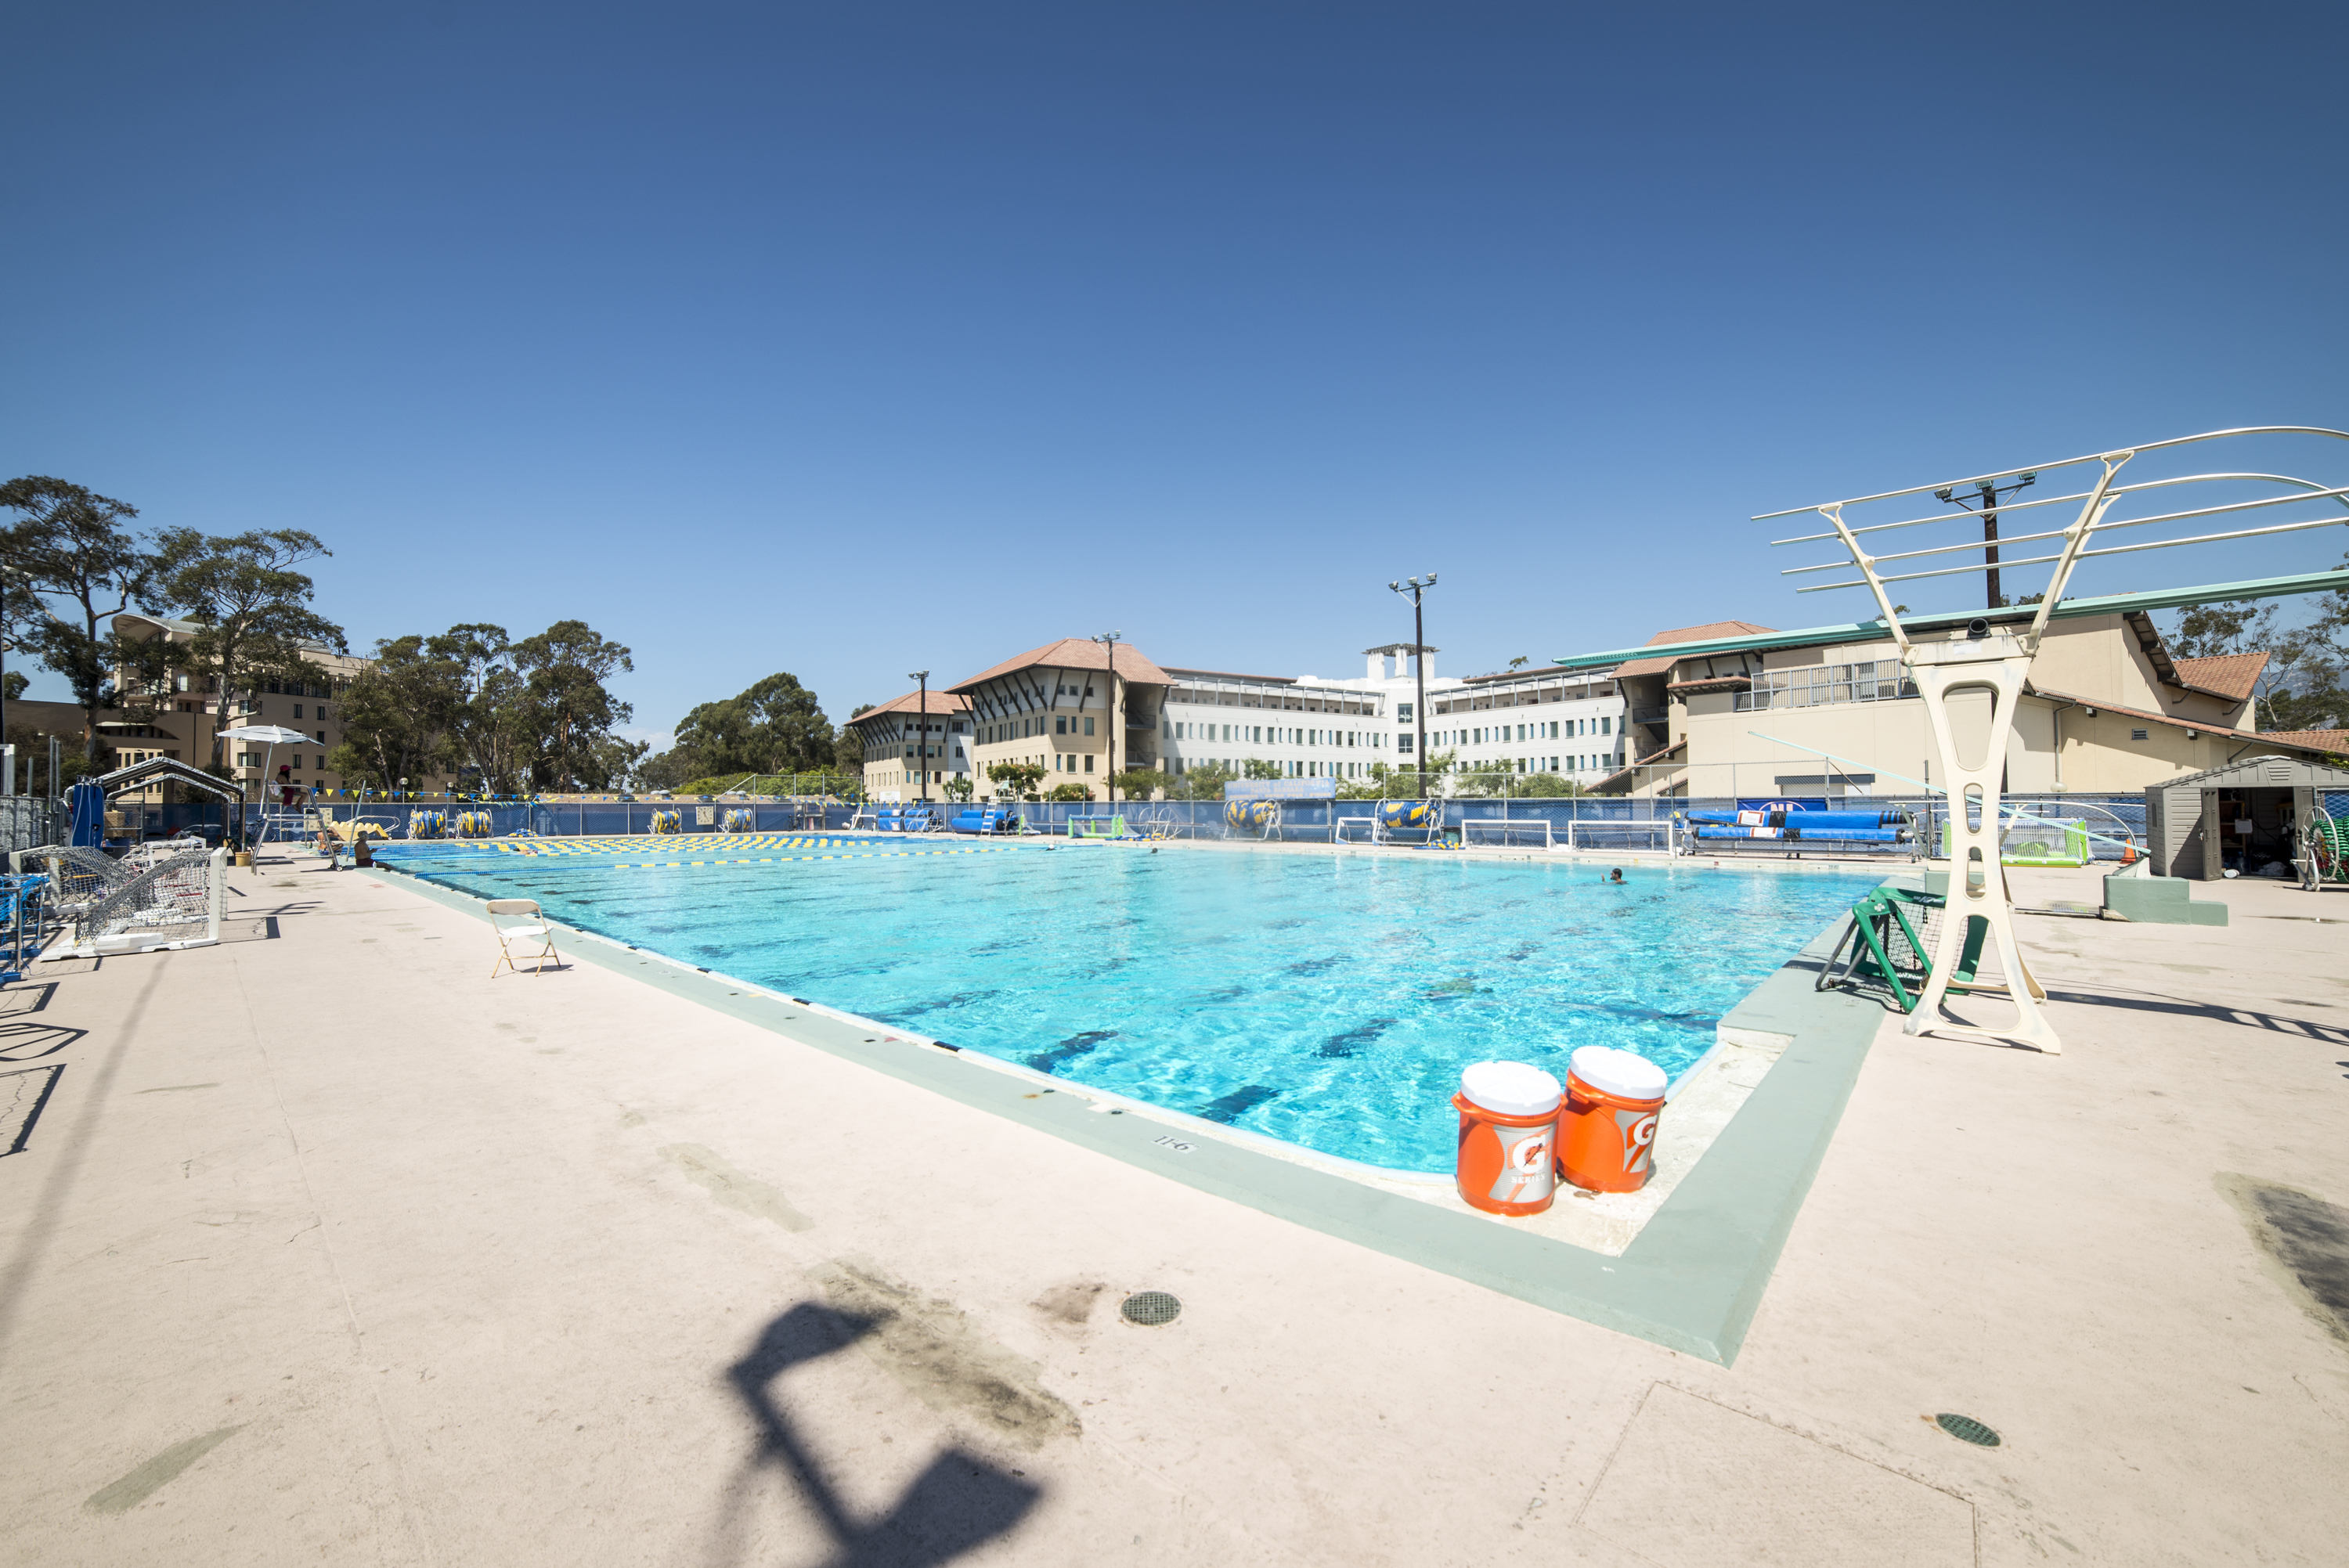 The Gauchos' hope to improve their home records at Campus Pool this season after below average records in 2014.  Daily Nexus/Lorenzo Basilio